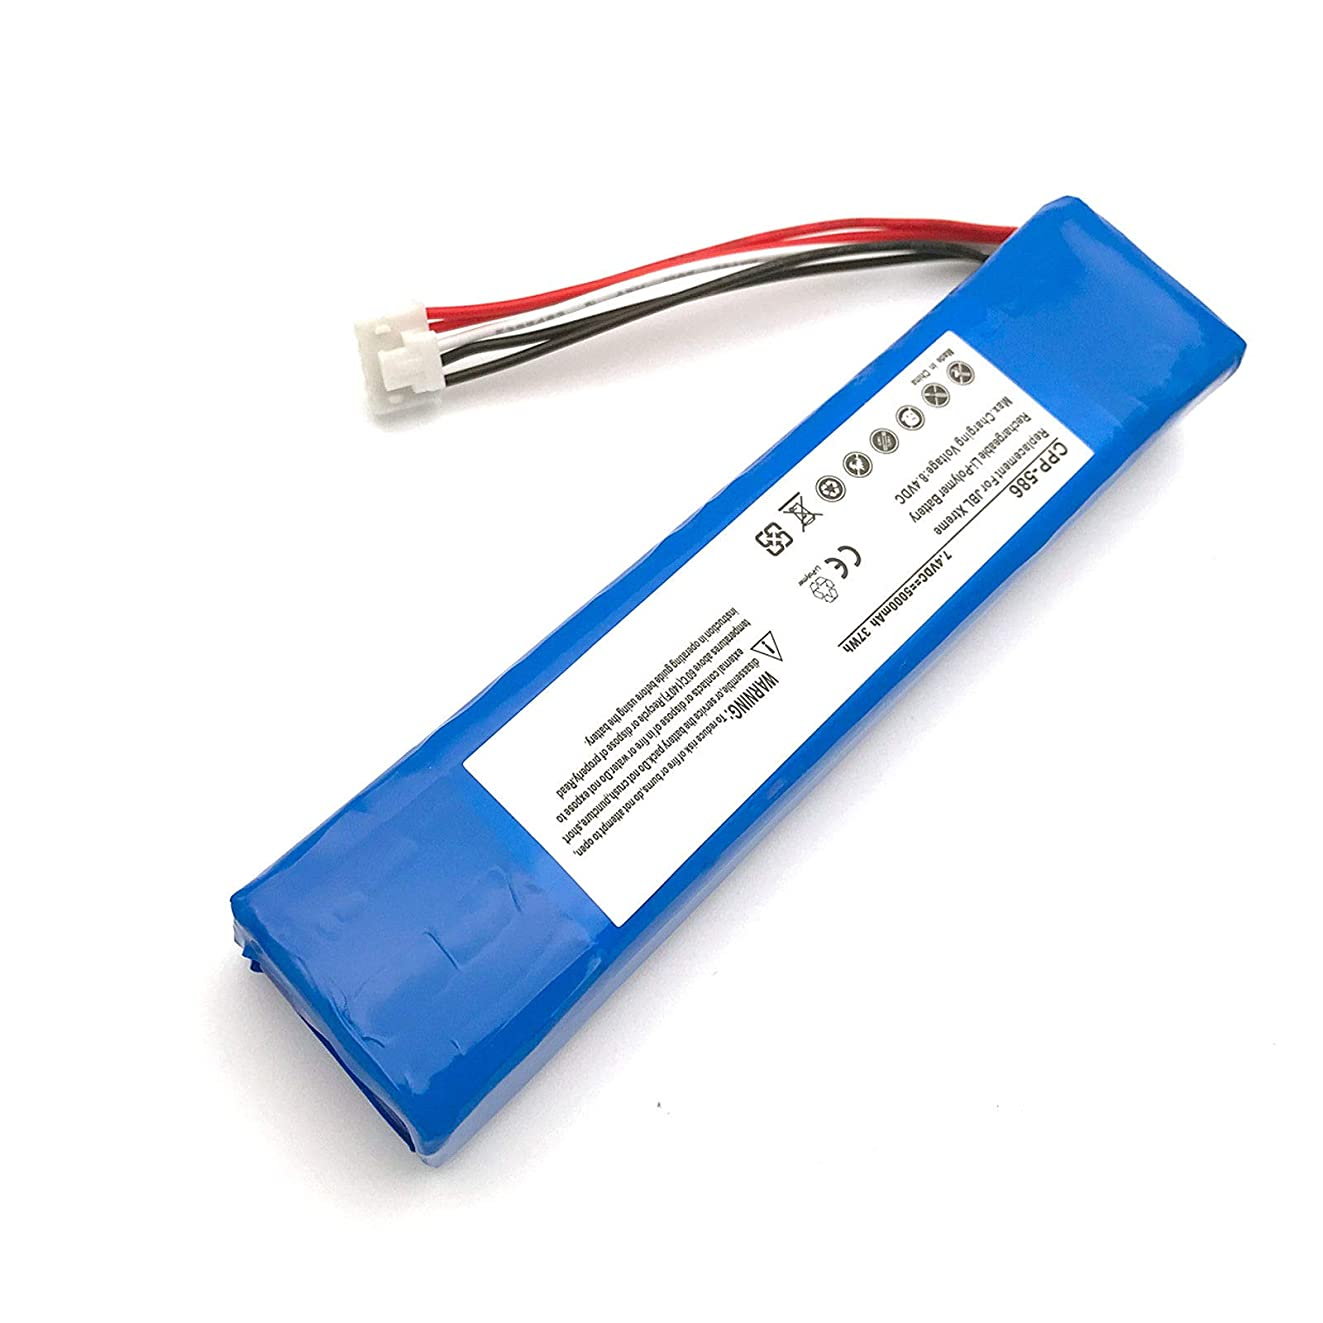 Yafda GSP0931134 7.4V5000mAh/37Wh New Battery for JBL Xtreme Wireless Bluetooth Speaker